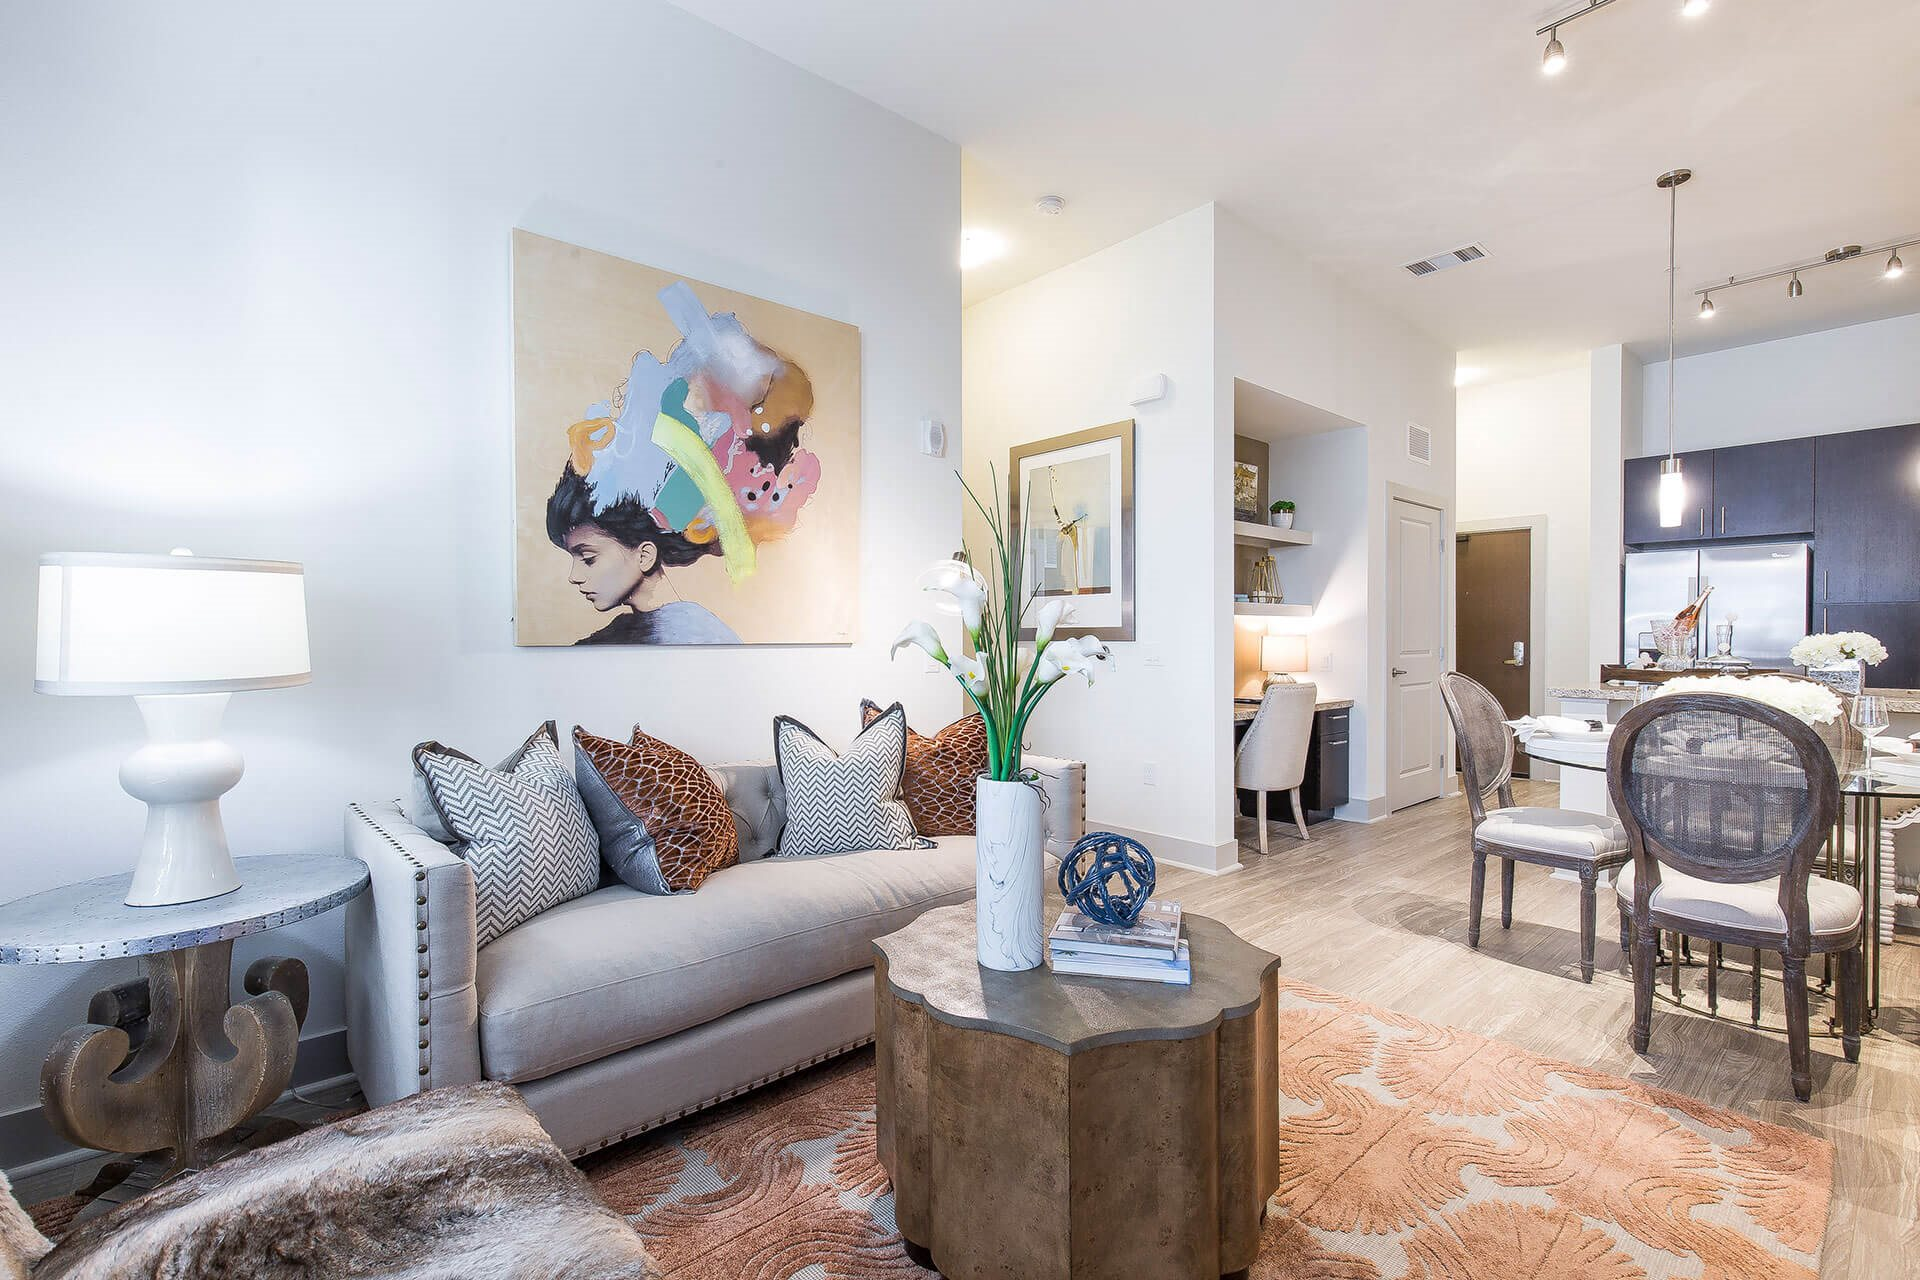 We offer studio, 1 and 2 bedroom floor plans, at Cannery Park by Windsor, 415 E Taylor St, San Jose